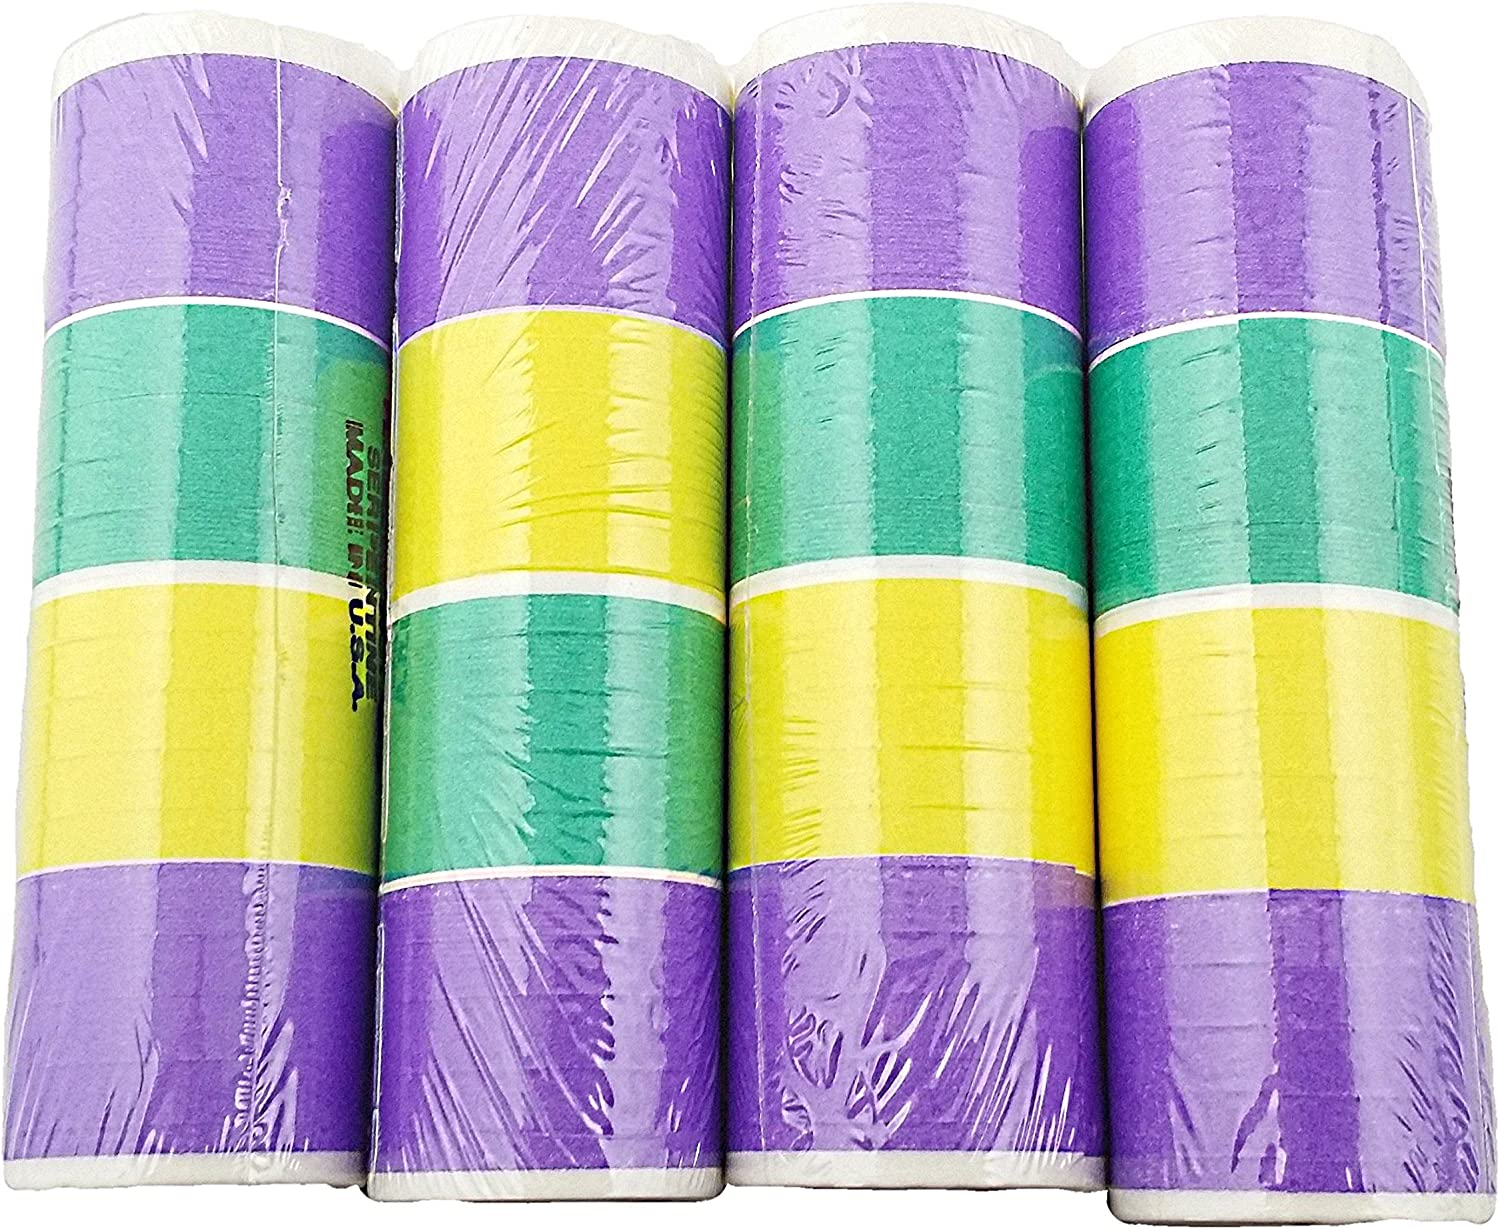 4 Rolls of 4th of July Party Serpentine Throws